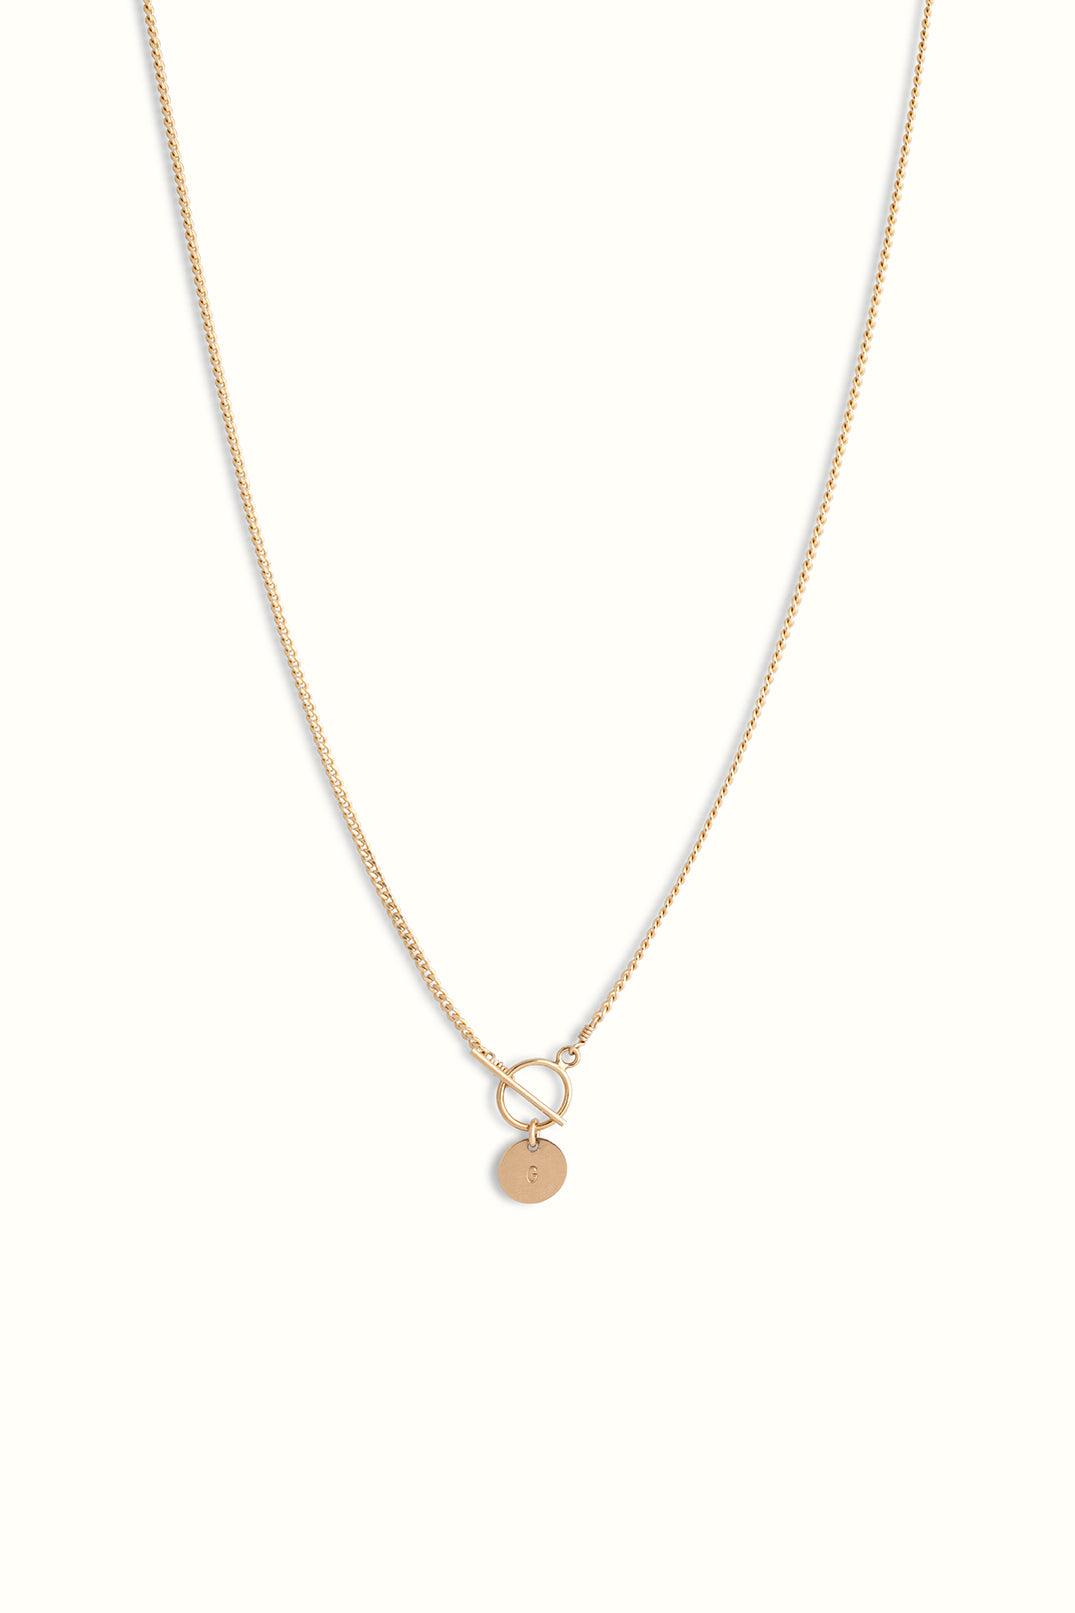 a product close up photo of a gold filled curb chain necklace with a toggle clasp and a round initial pendant